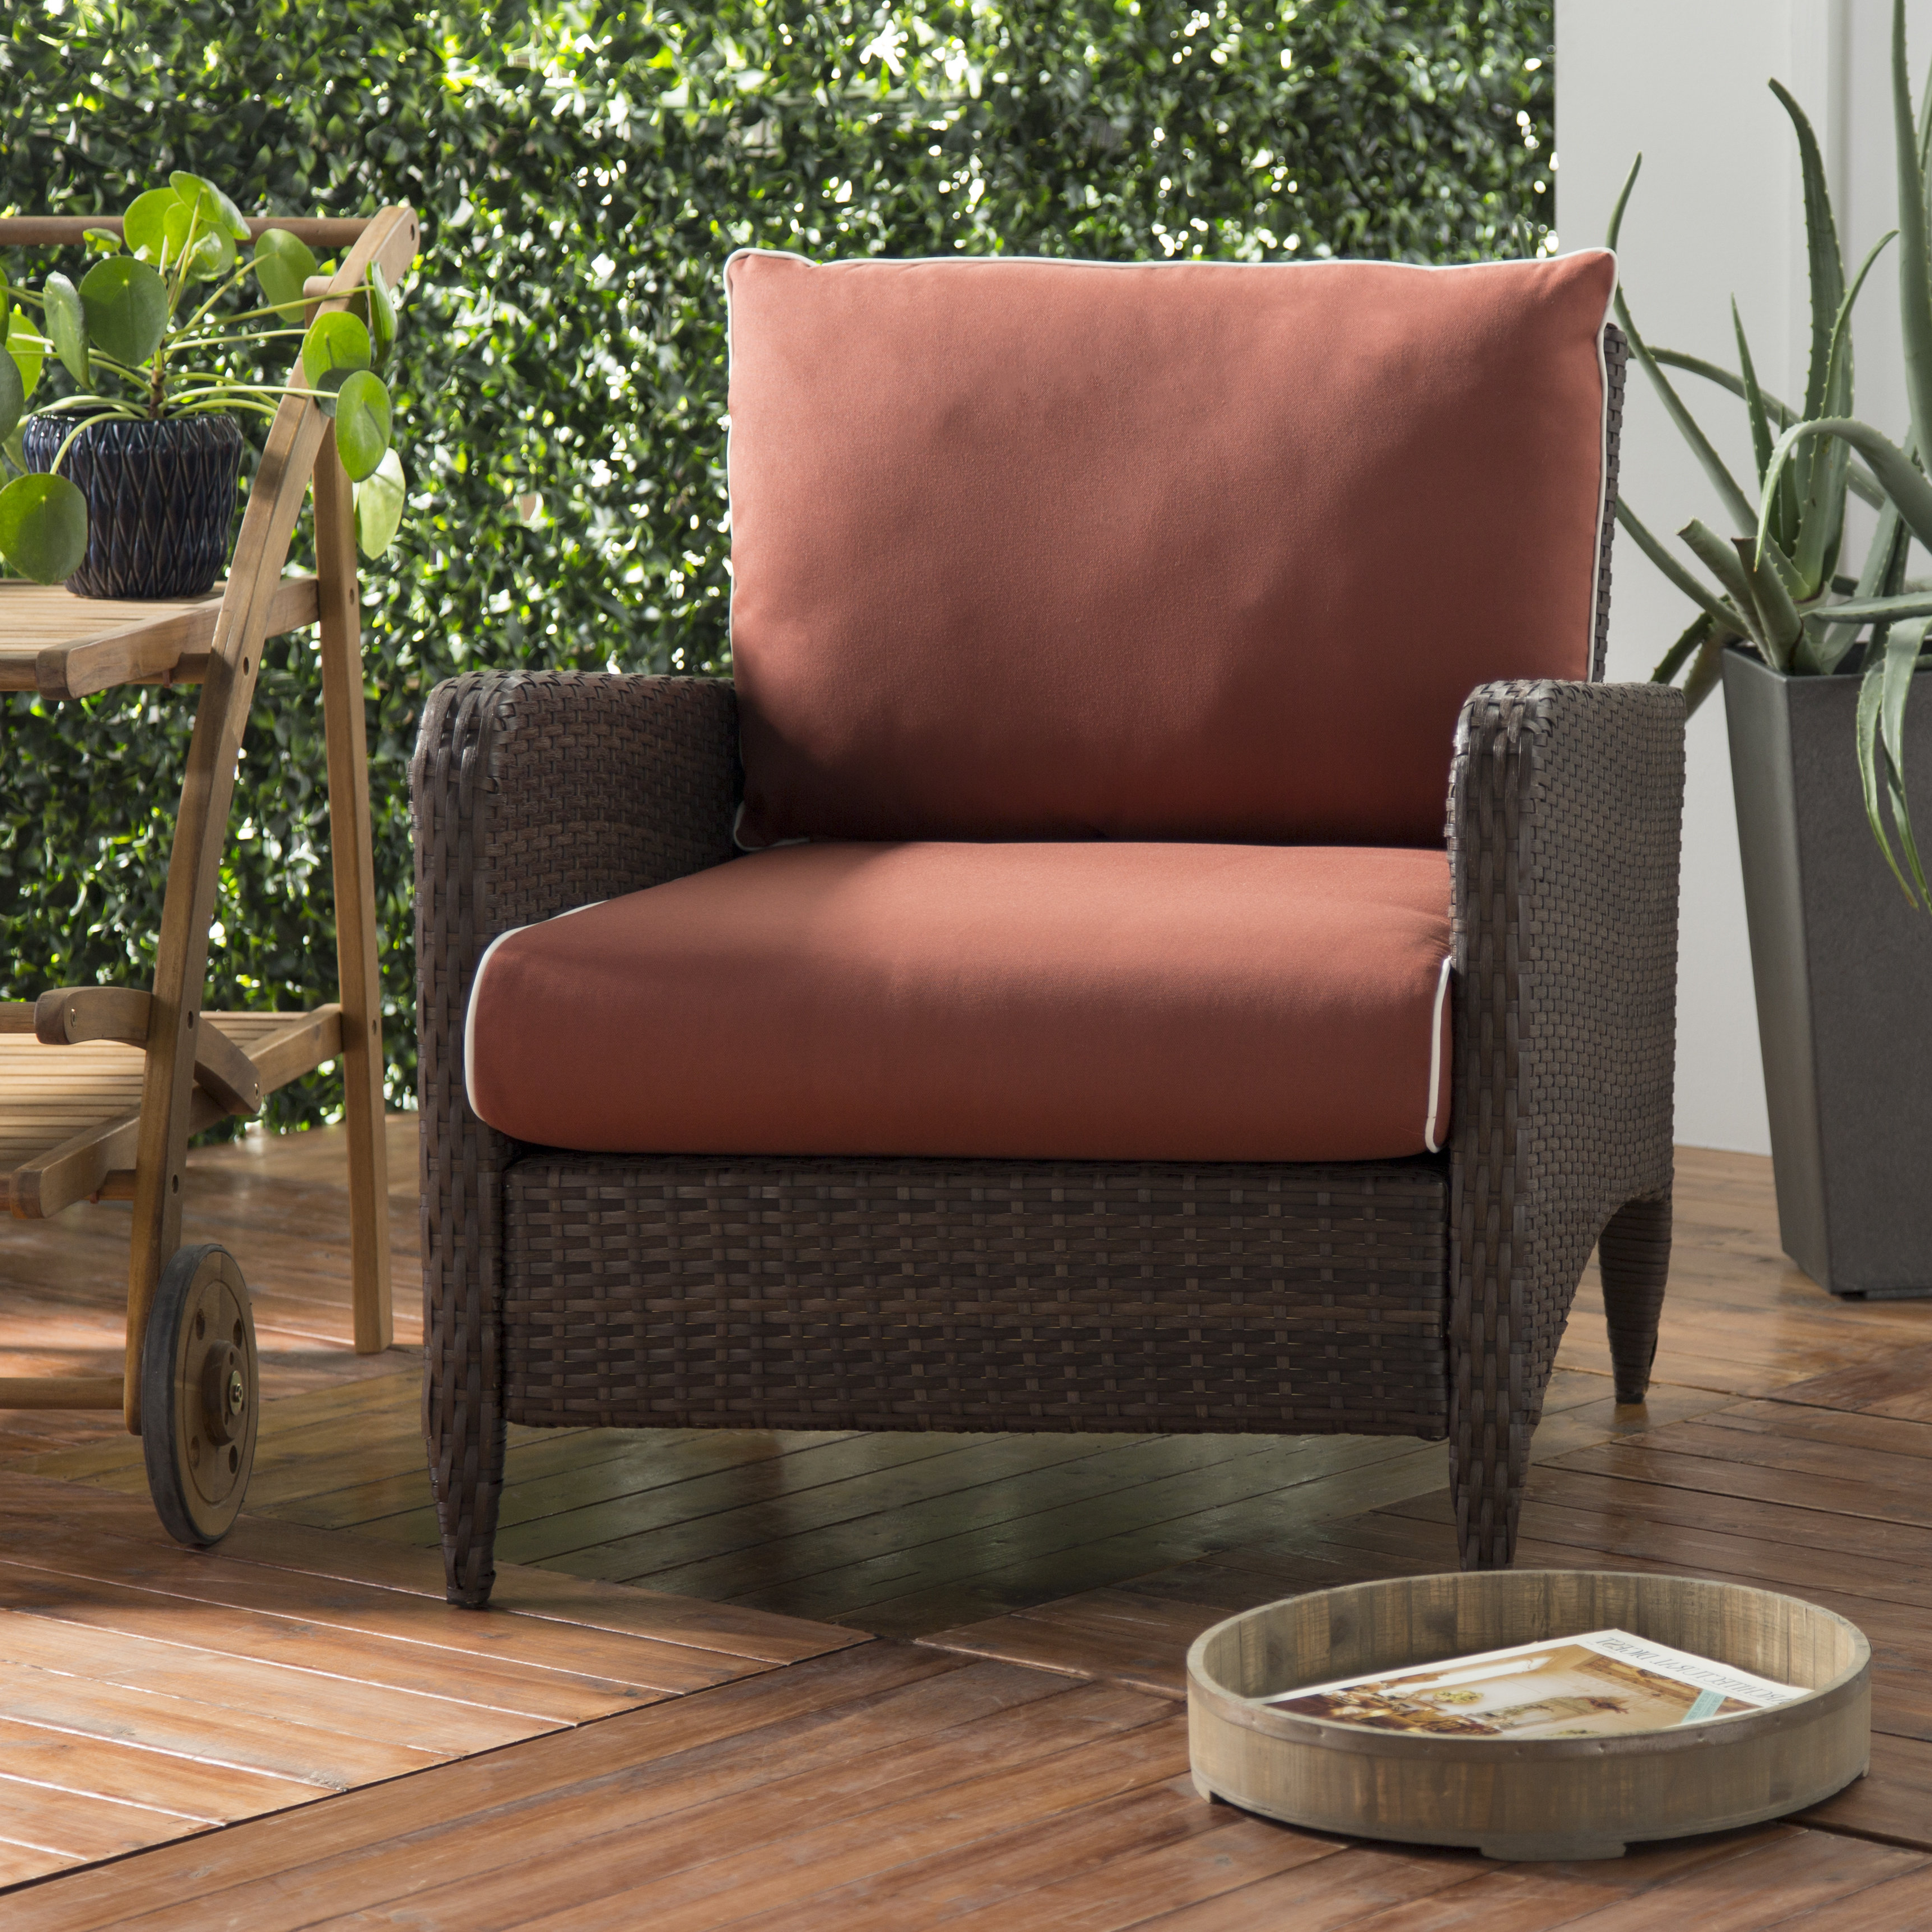 Mosca Patio Chair With Cushion With Regard To Trendy Mosca Patio Loveseats With Cushions (View 5 of 20)